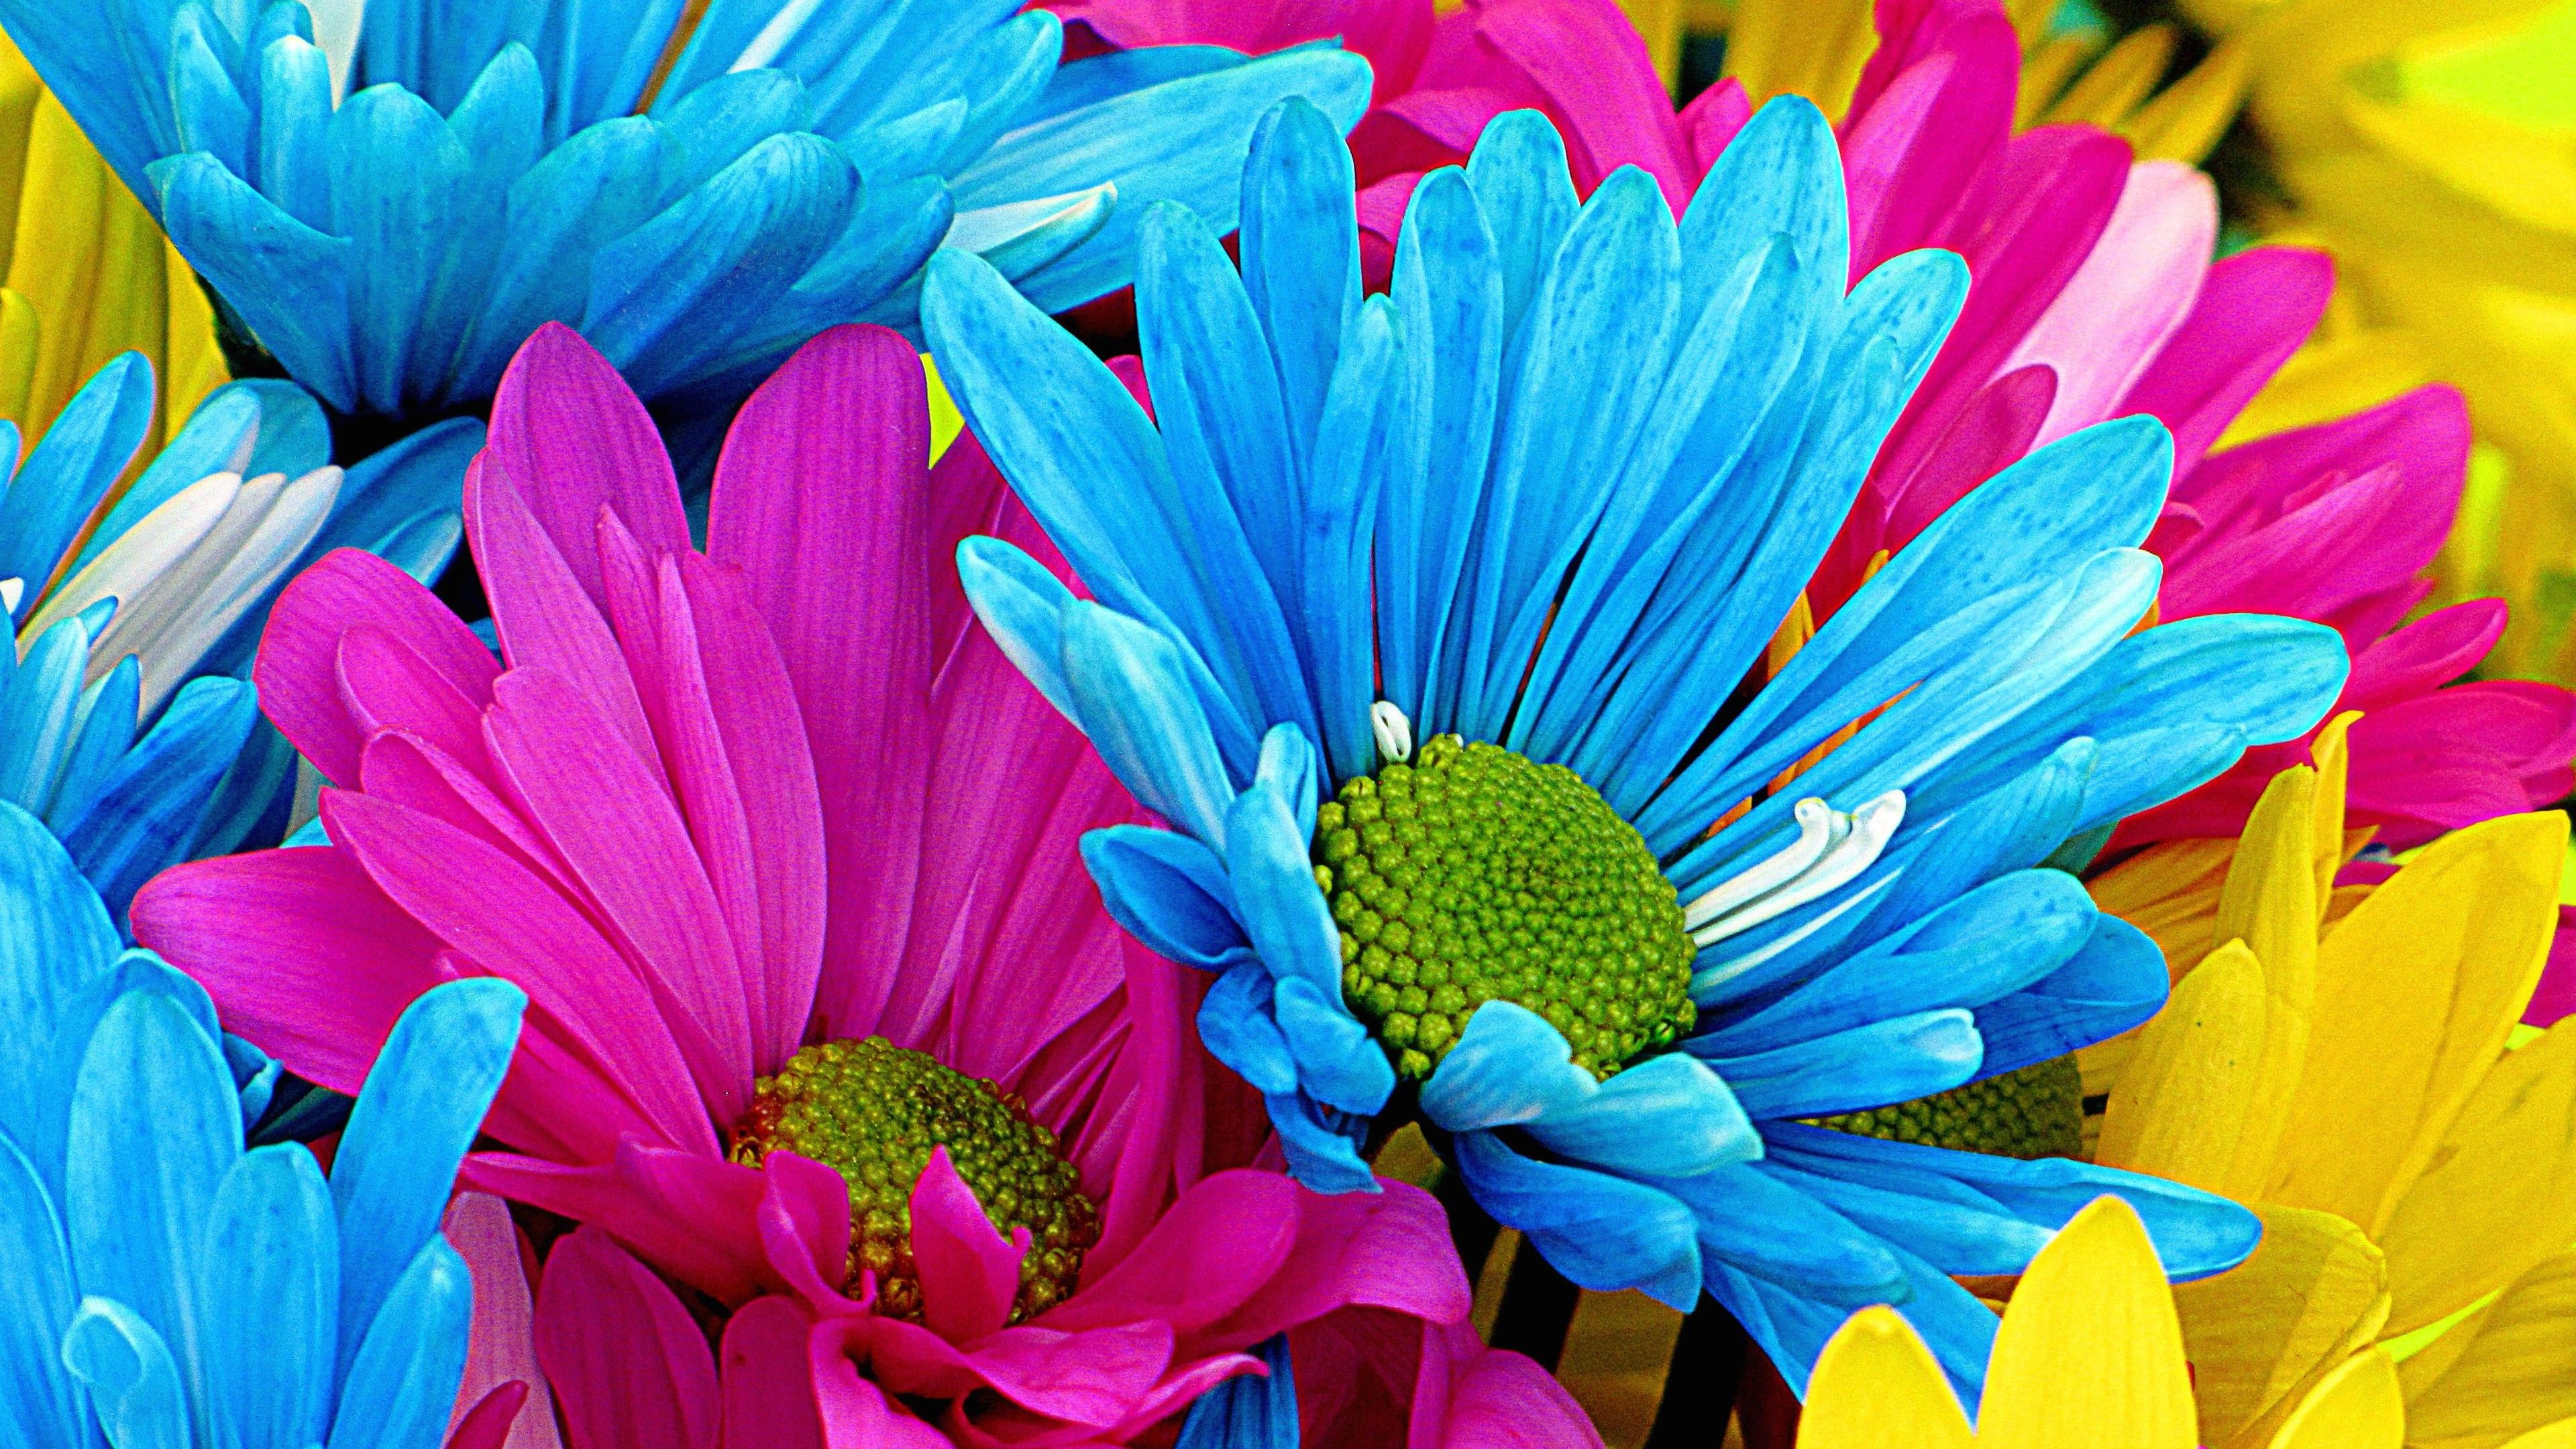 Colorful Flower Graphics Daisy Wallpaper High Definition 16584